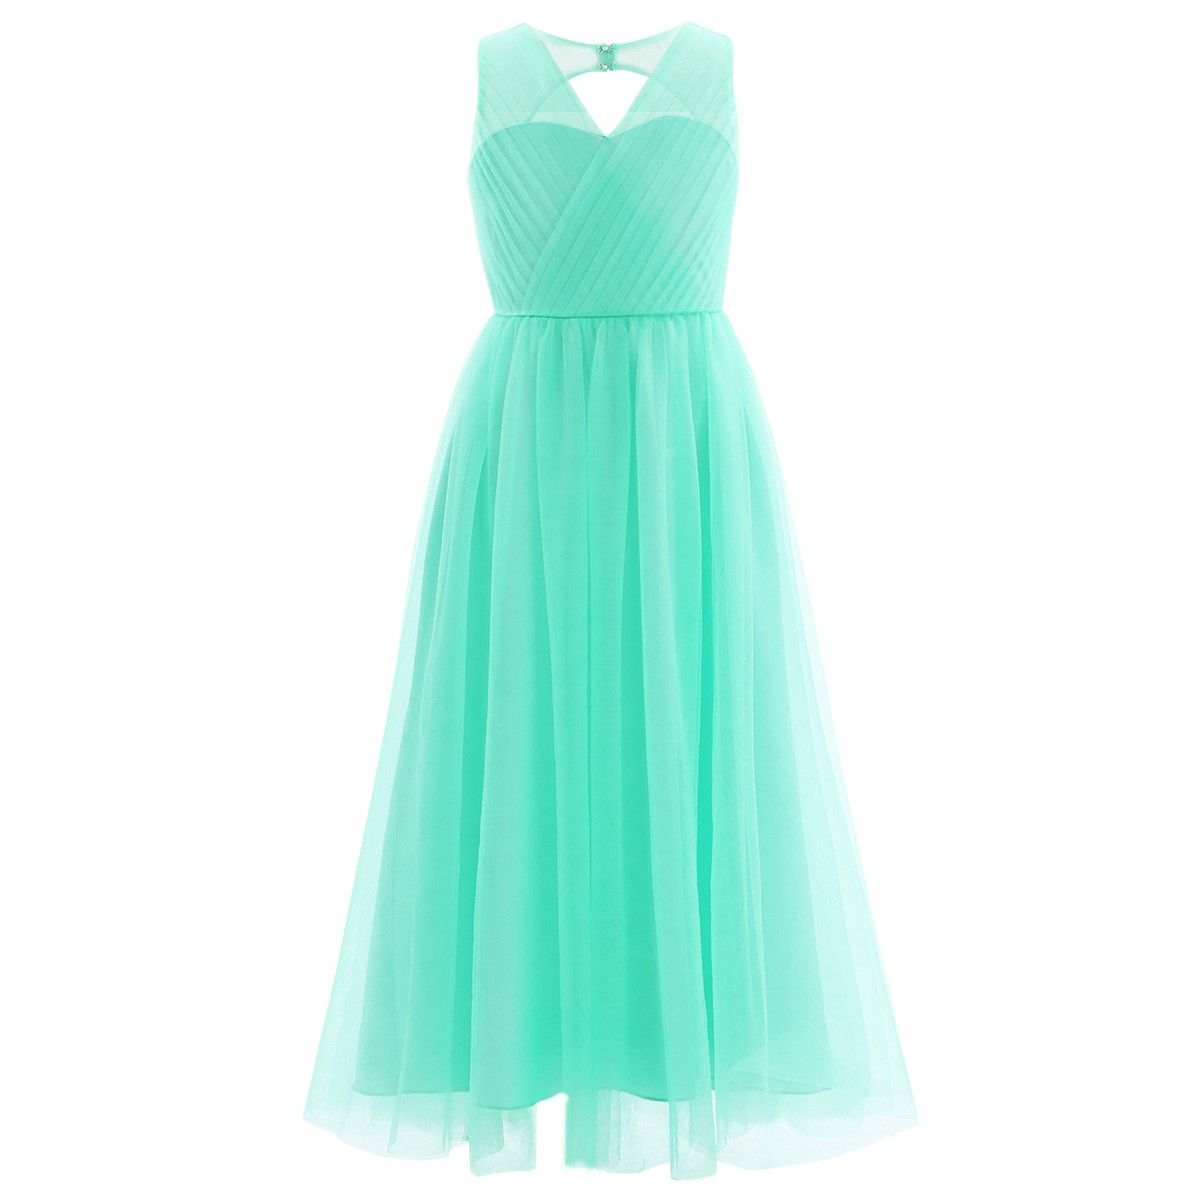 iEFiEL Turquoise Flower Girl Dresses Princess Pageant Wedding ...